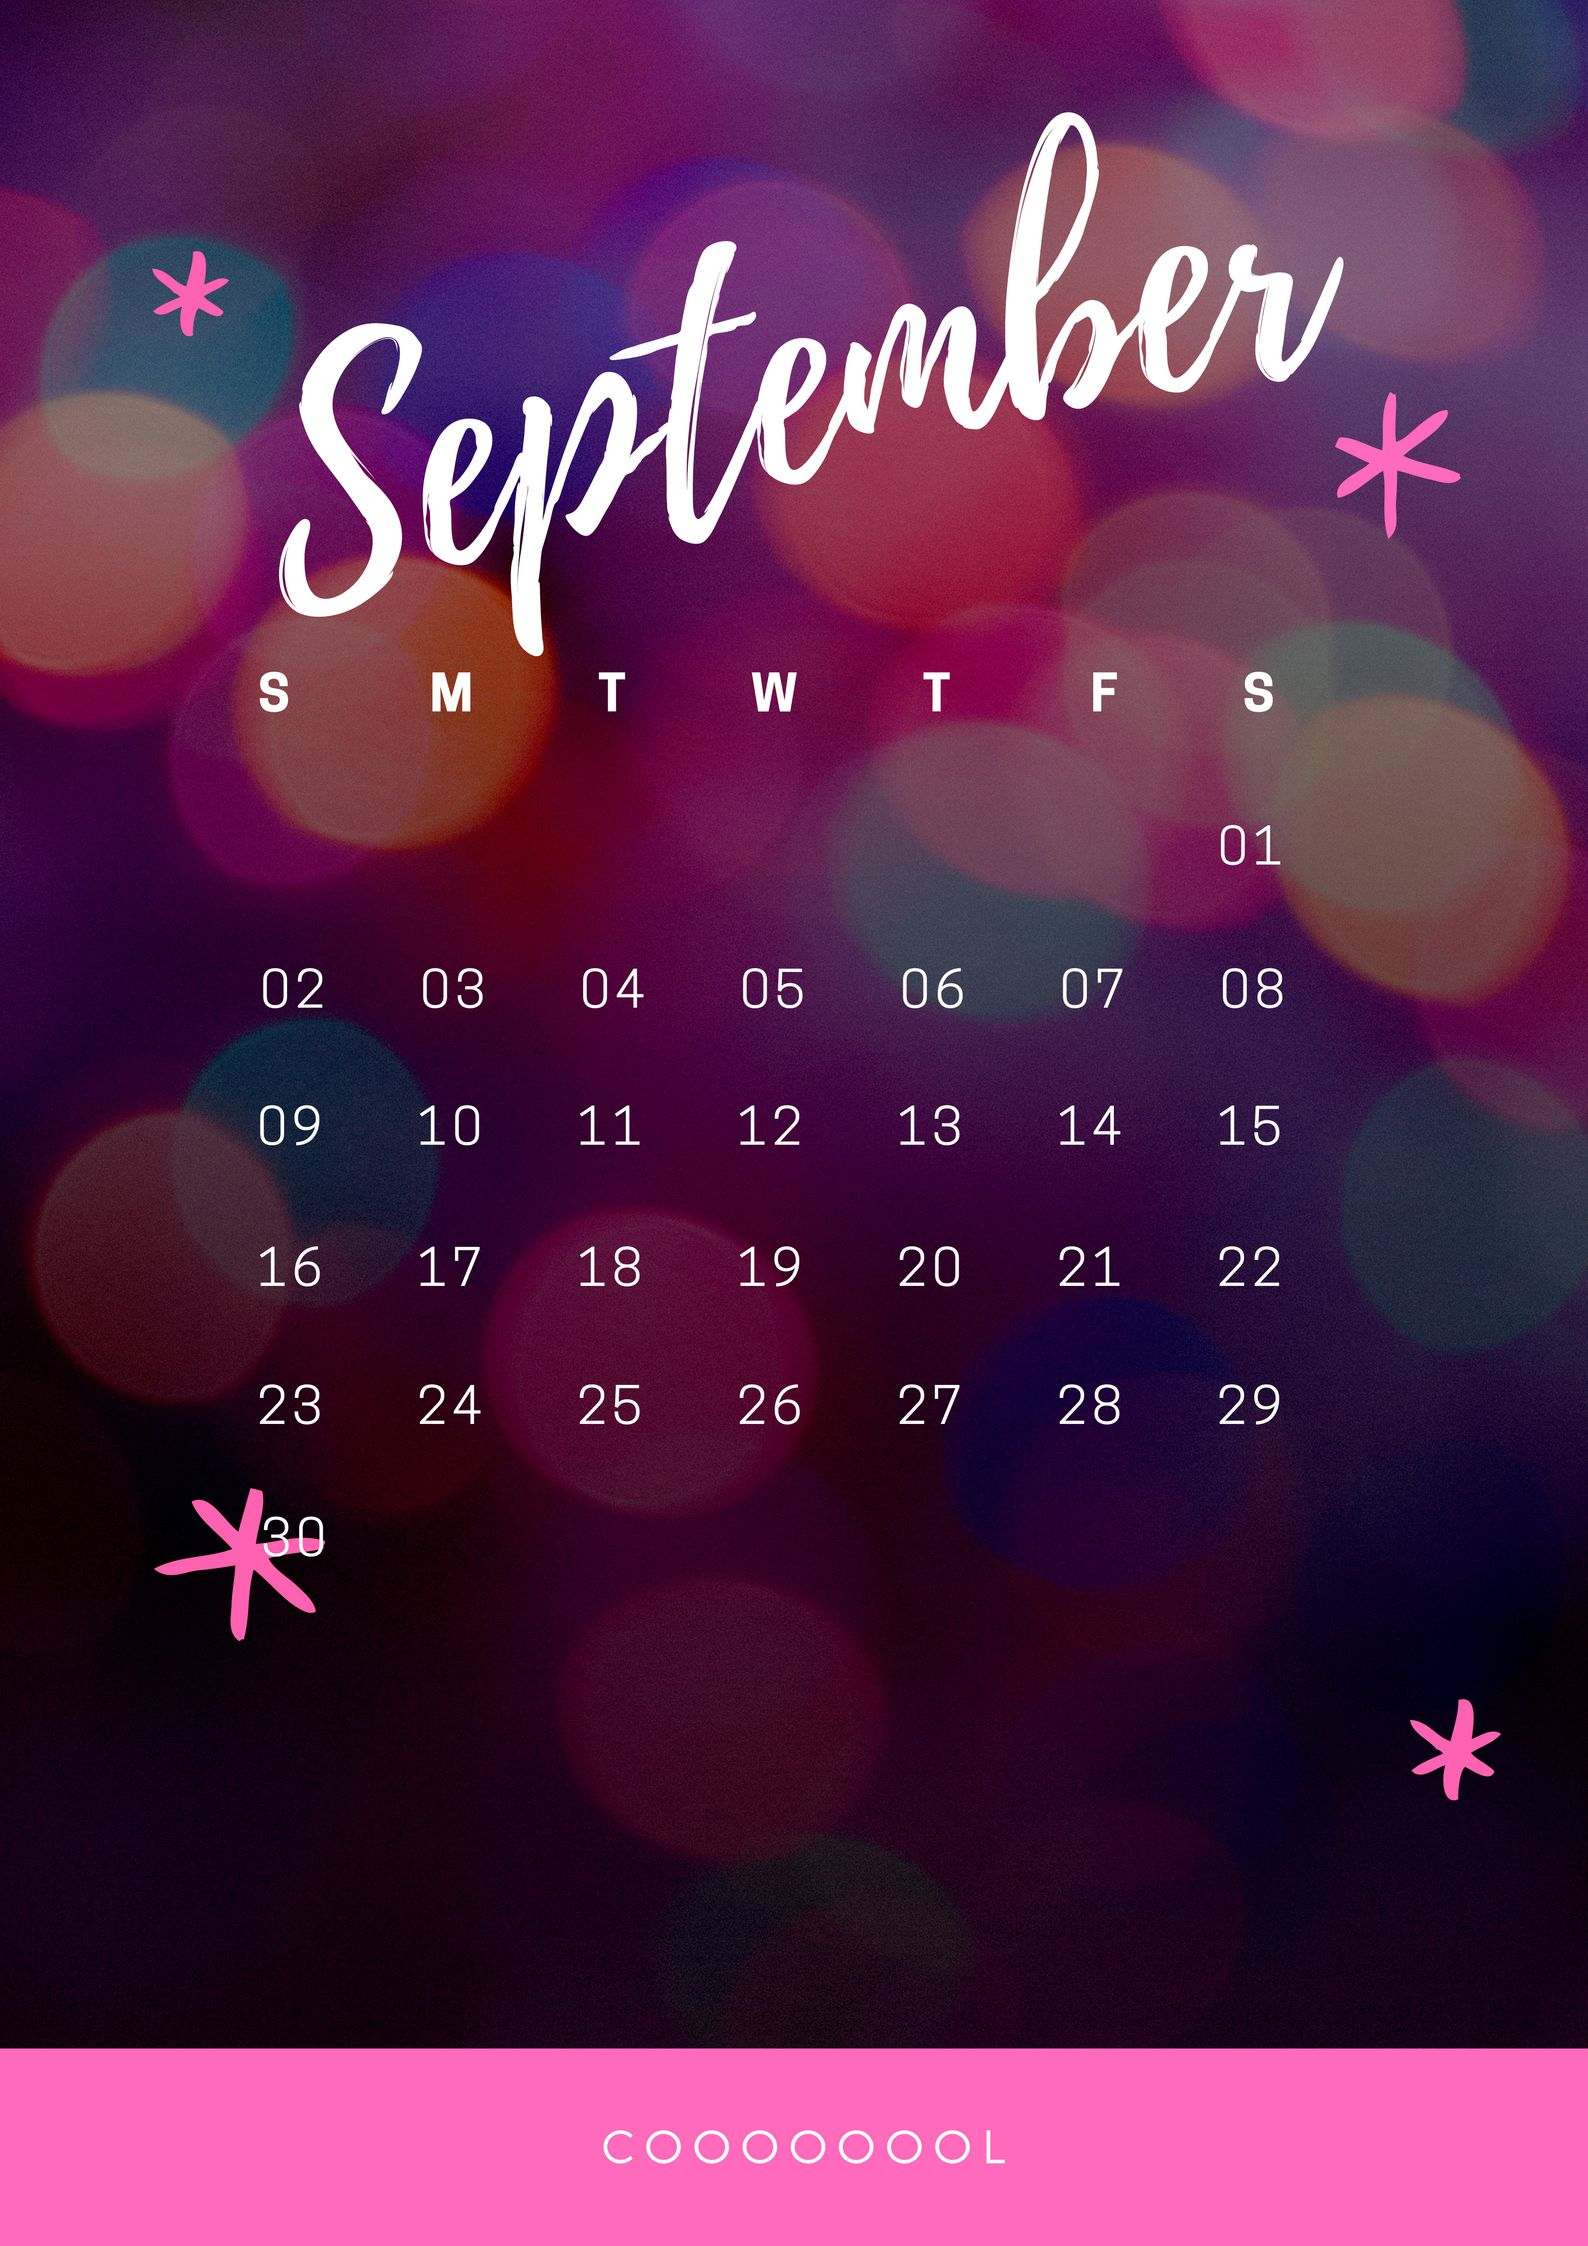 Amazing September 2018 iPhone Calendar